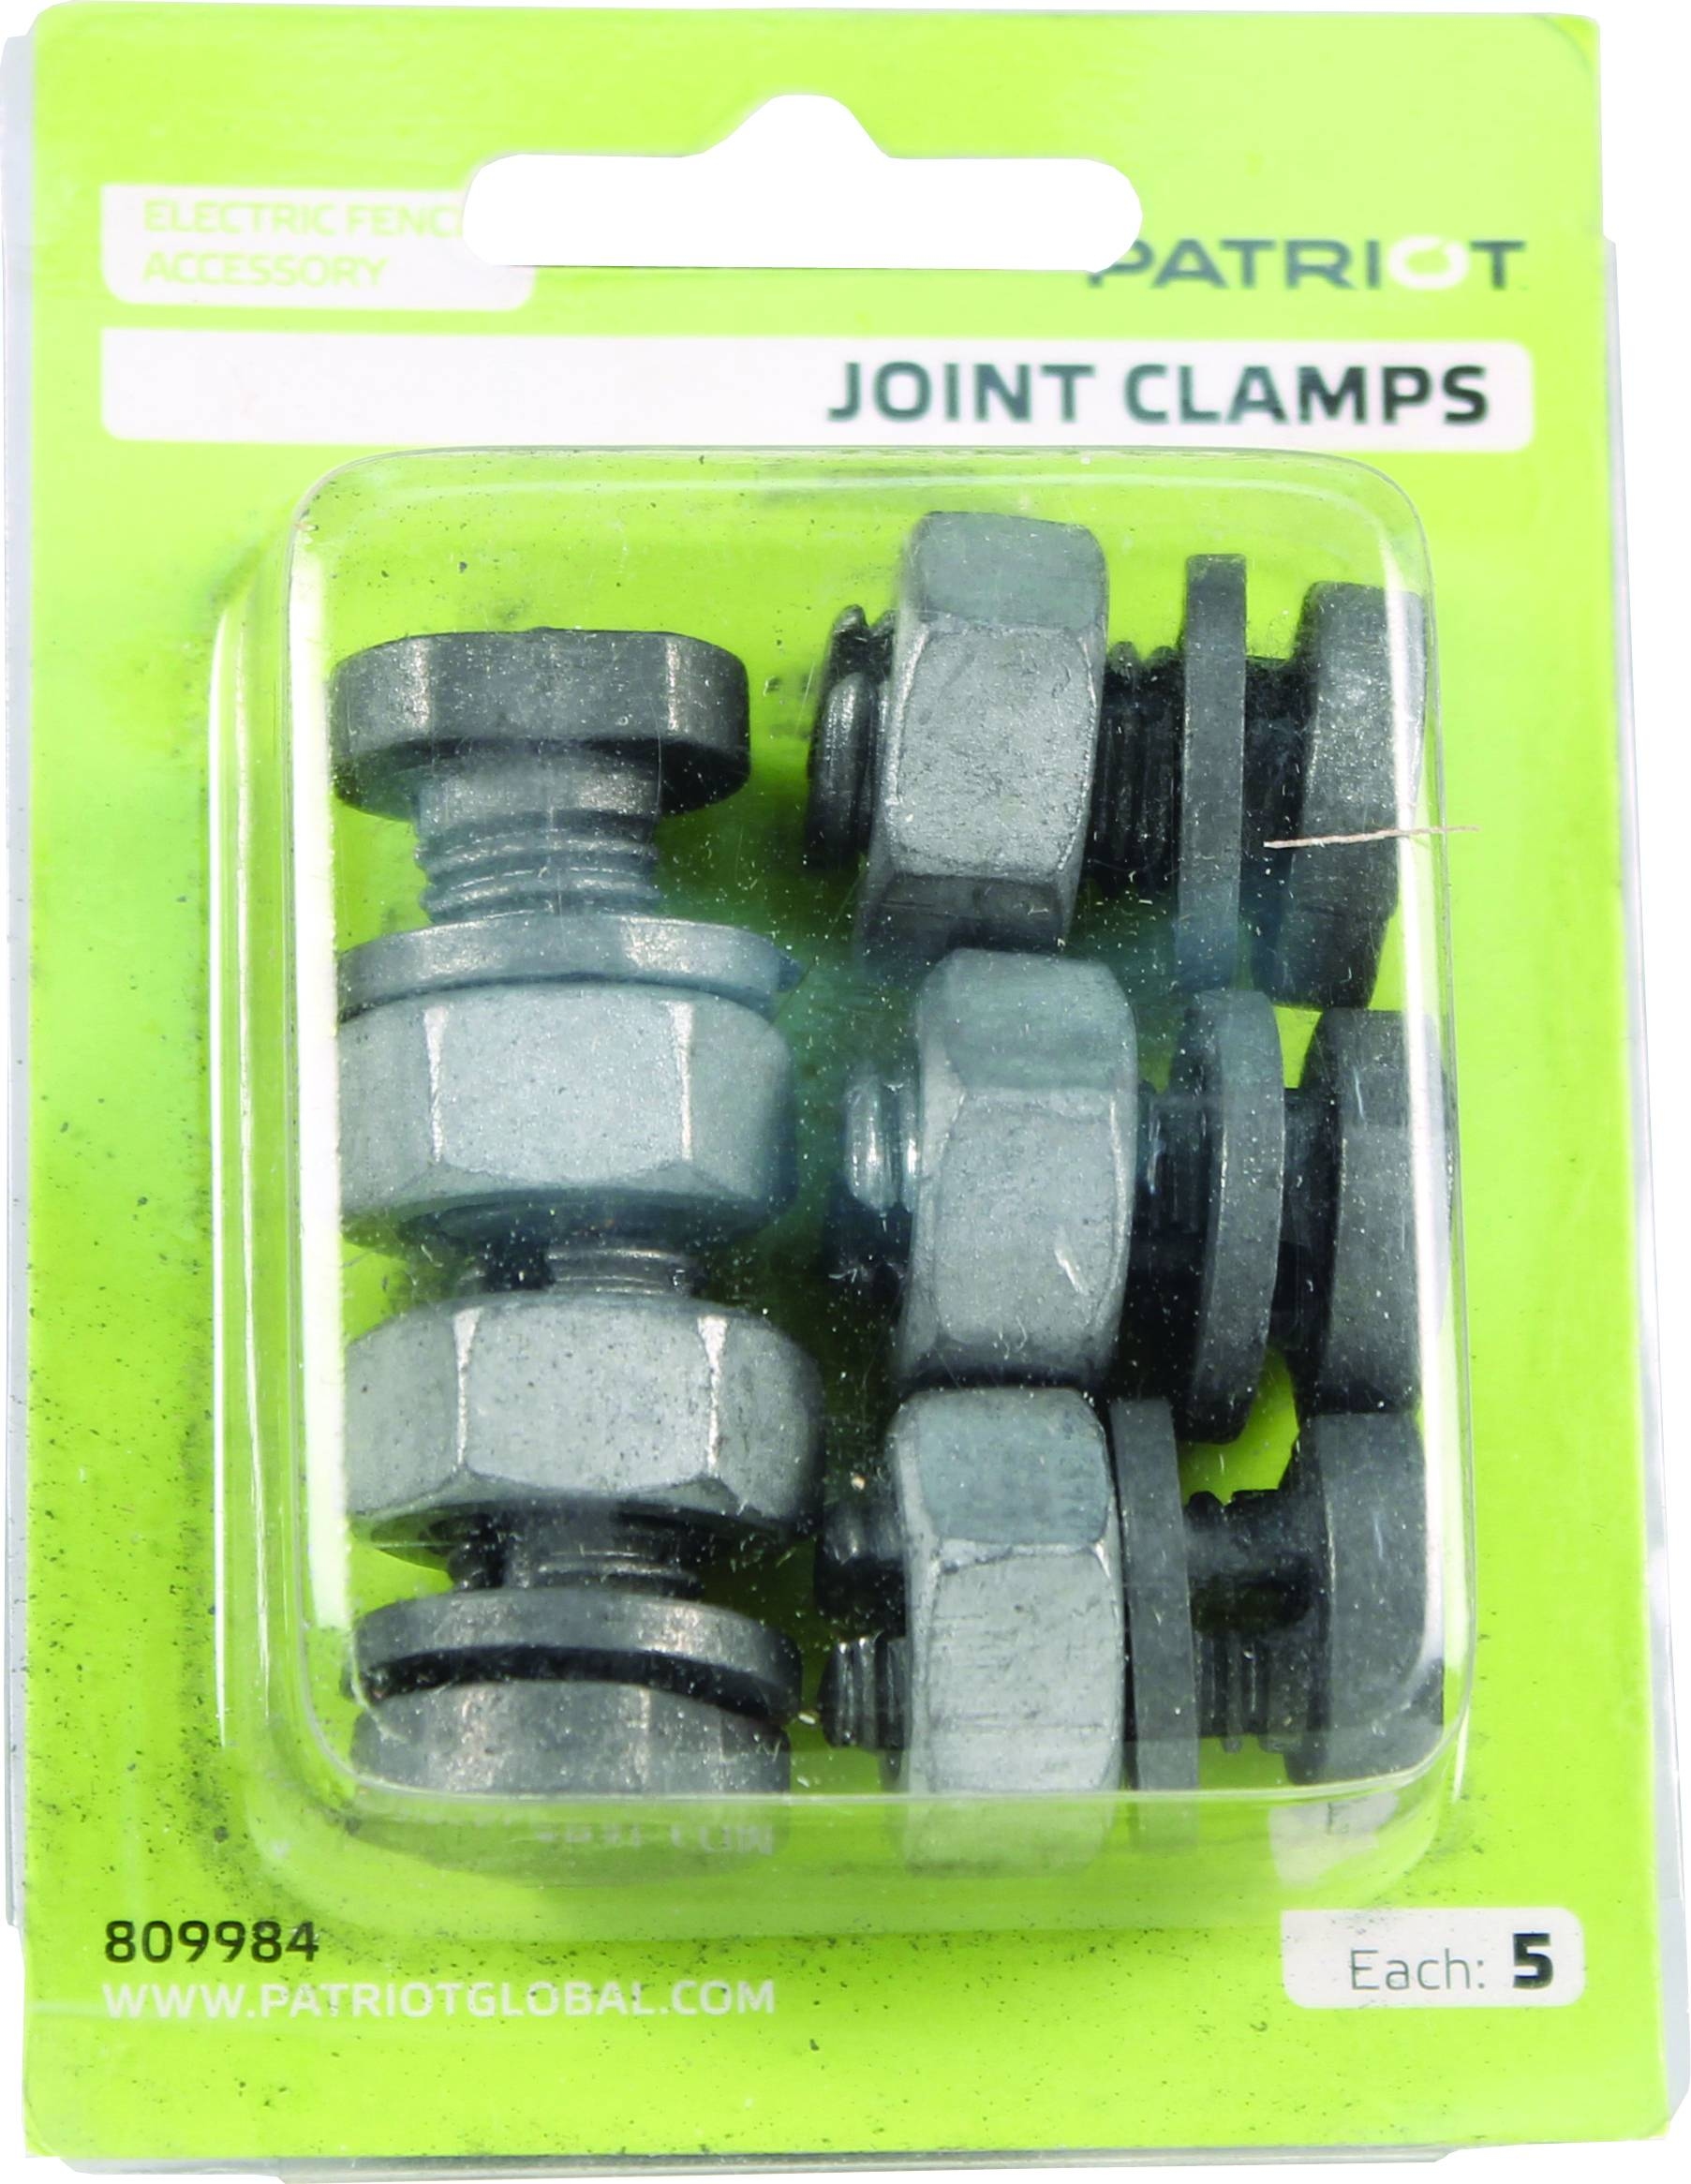 Patriot Joint Clamps